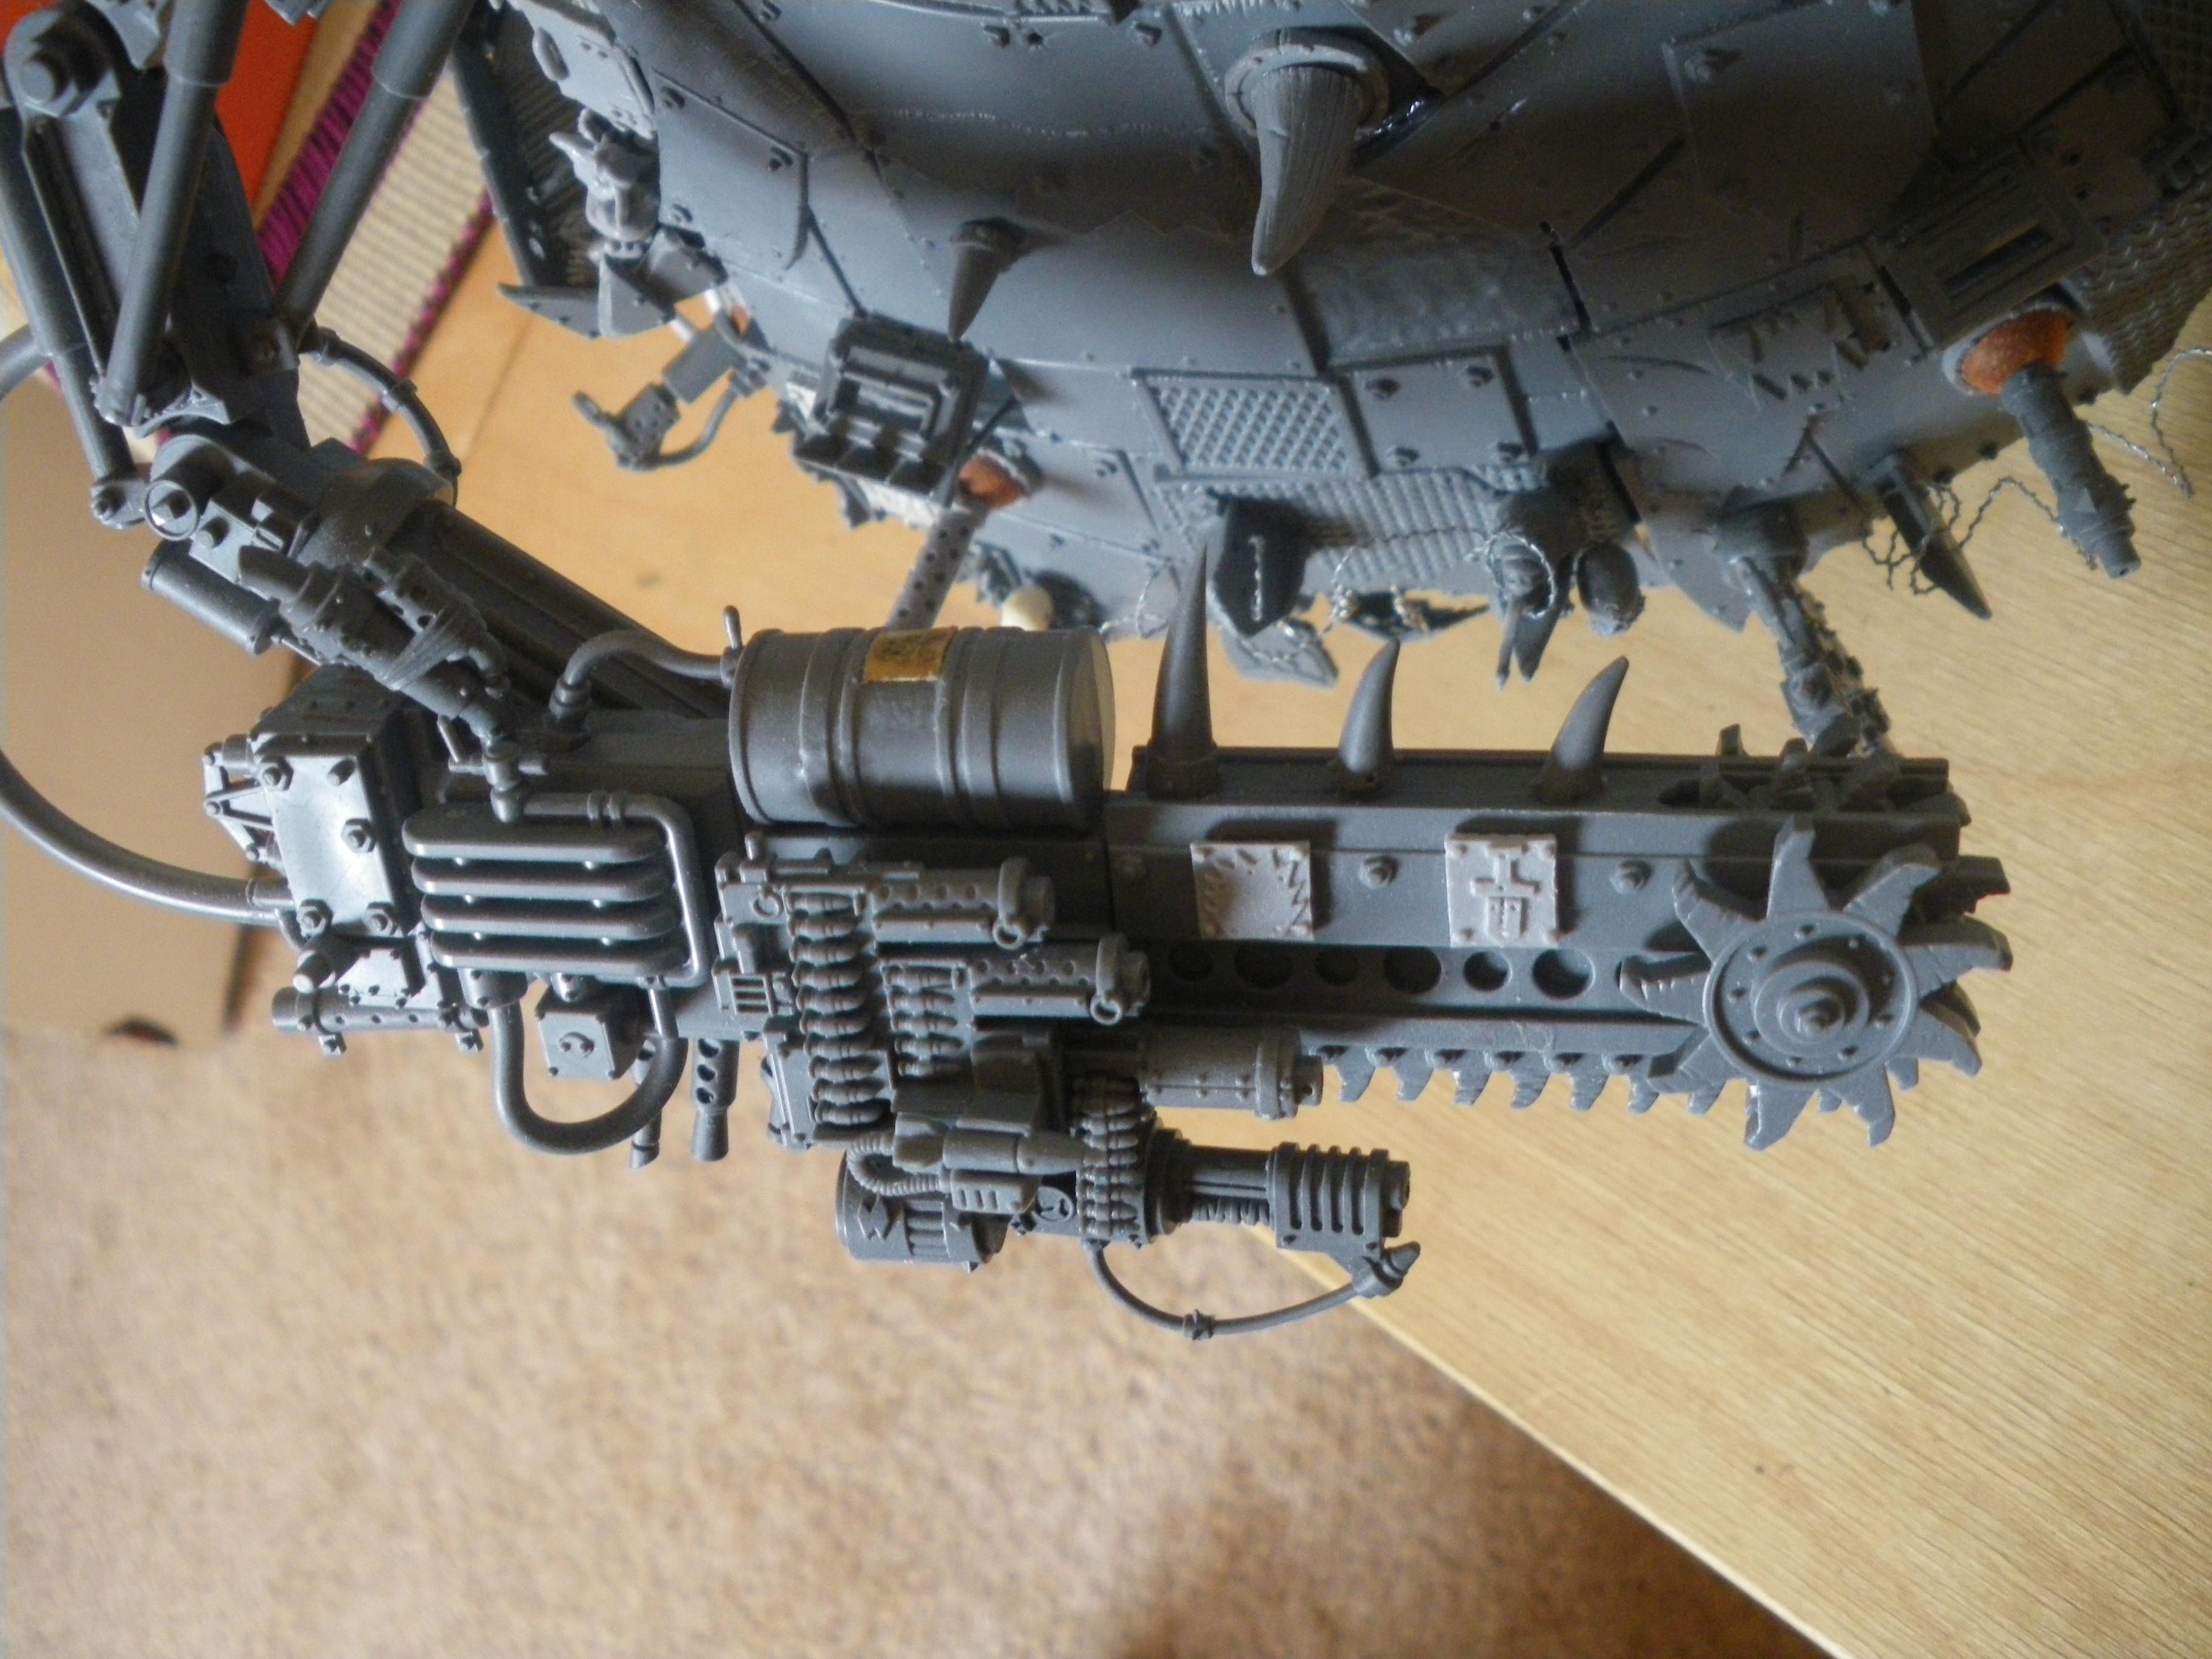 Convershun, Conversion, Grots, Grotz, Orks, Project, Stompa, Work In Progress